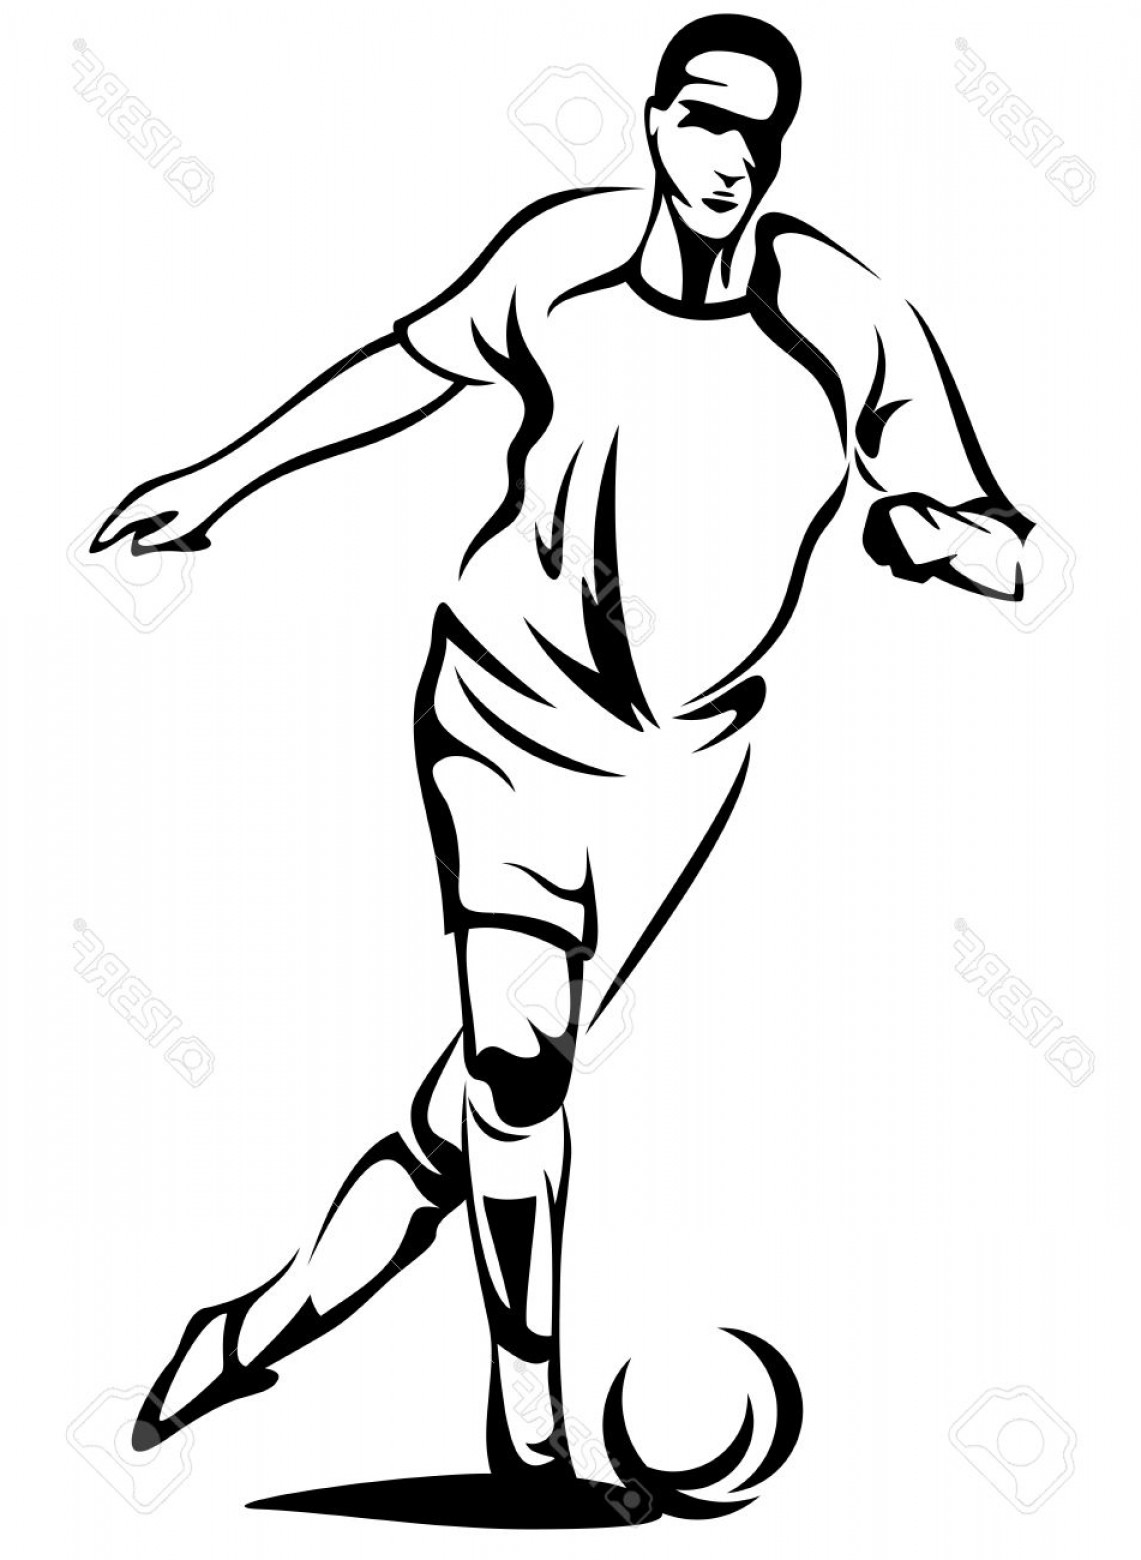 Abstract Football Vector Outline: Photosoccer Player Monochrome Vector Outline Black Over White